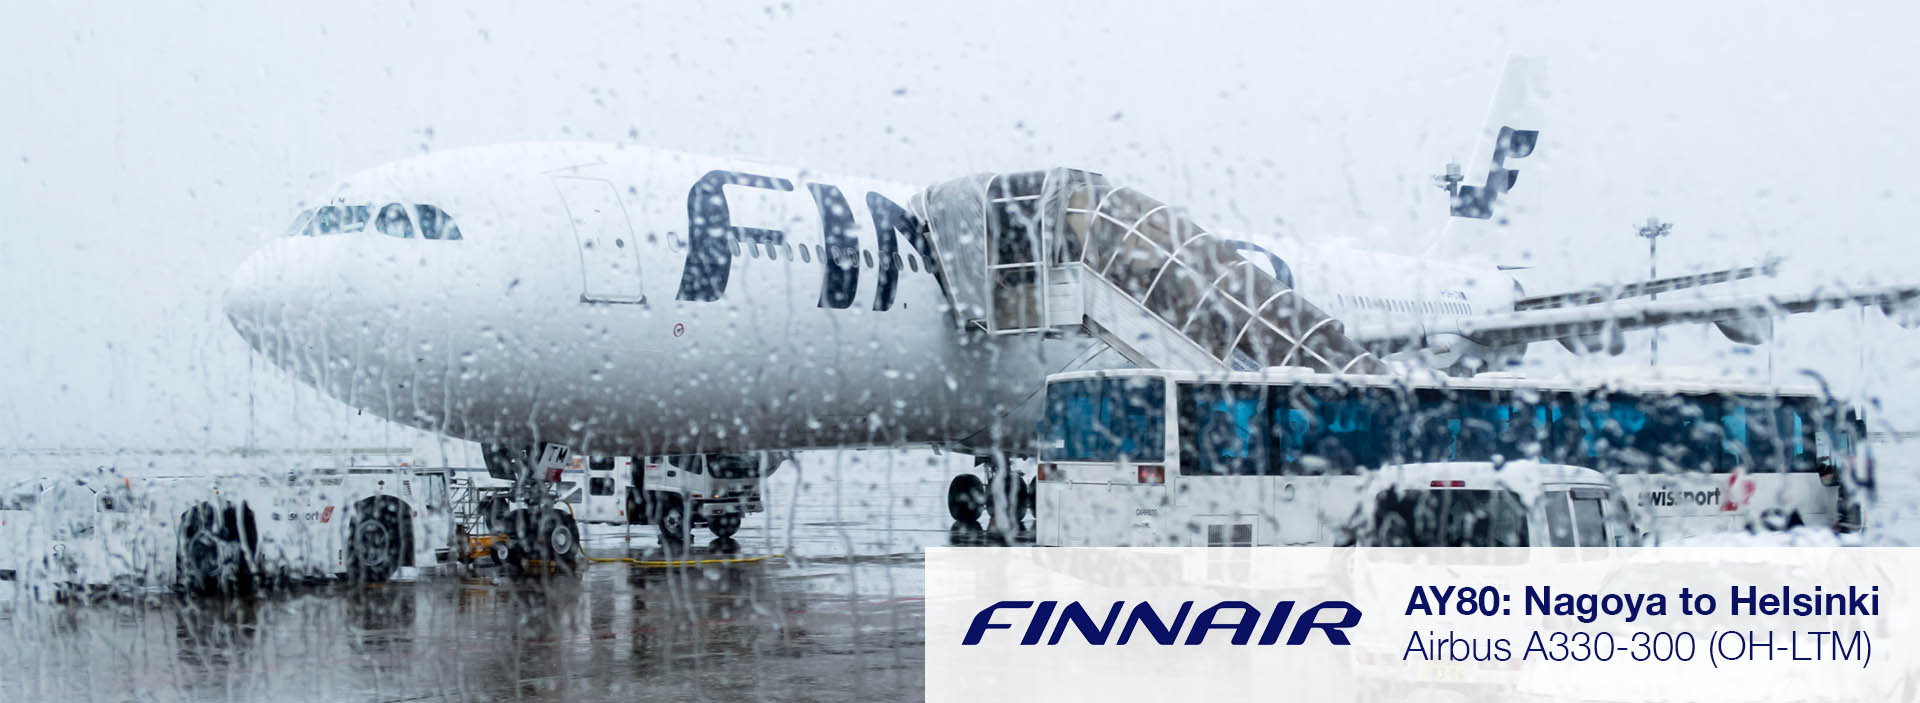 Flight Review: Finnair A330-300 Economy Class from Nagoya Centrair to Helsinki